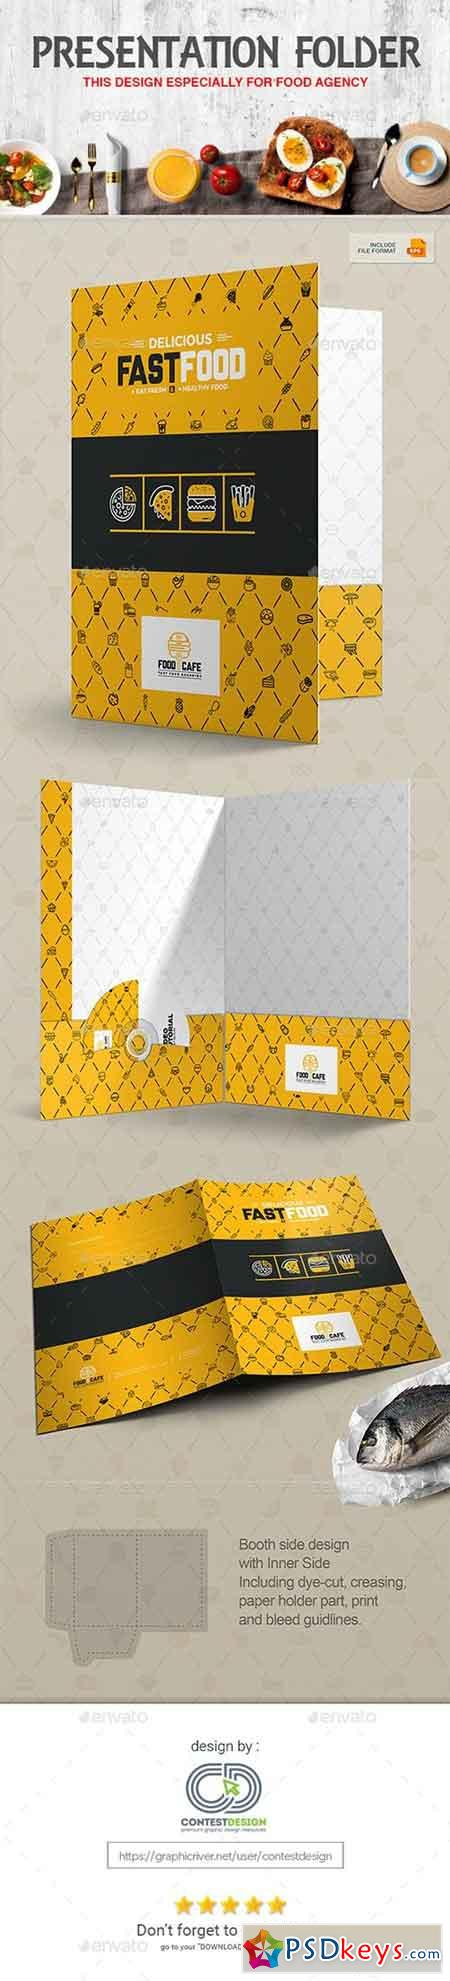 Presentation Folder Design Template for Fast Food Restaurants Cafe 20333501